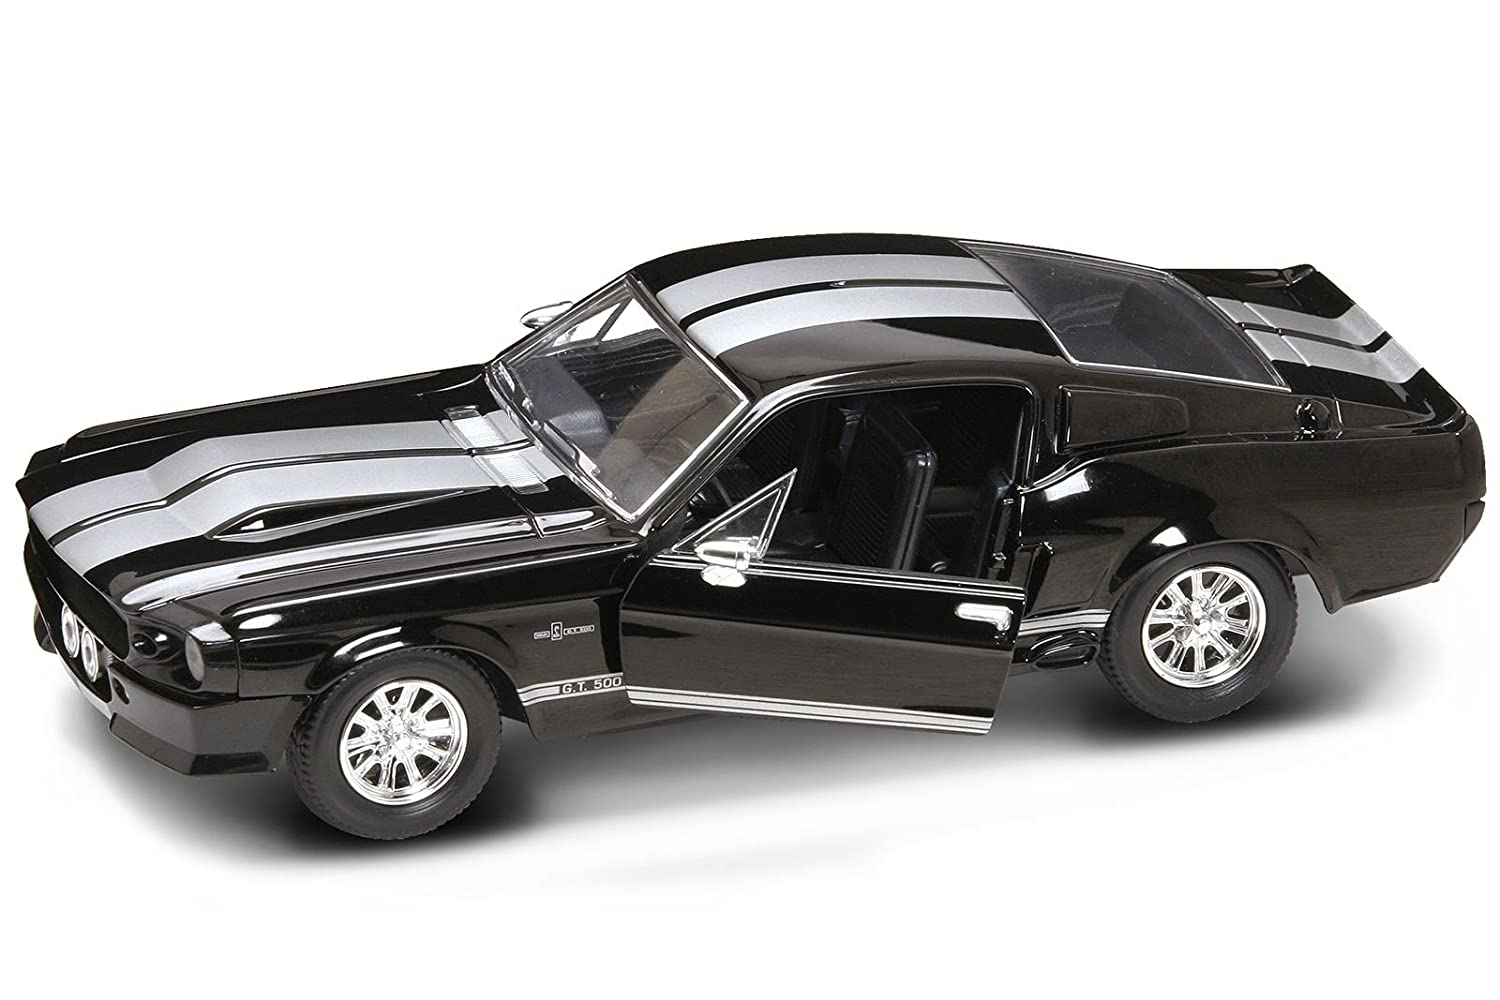 Ford lucky diecast 1 24 shelby mustang gt 500 1967 black gt500 die cast car amazon co uk toys games